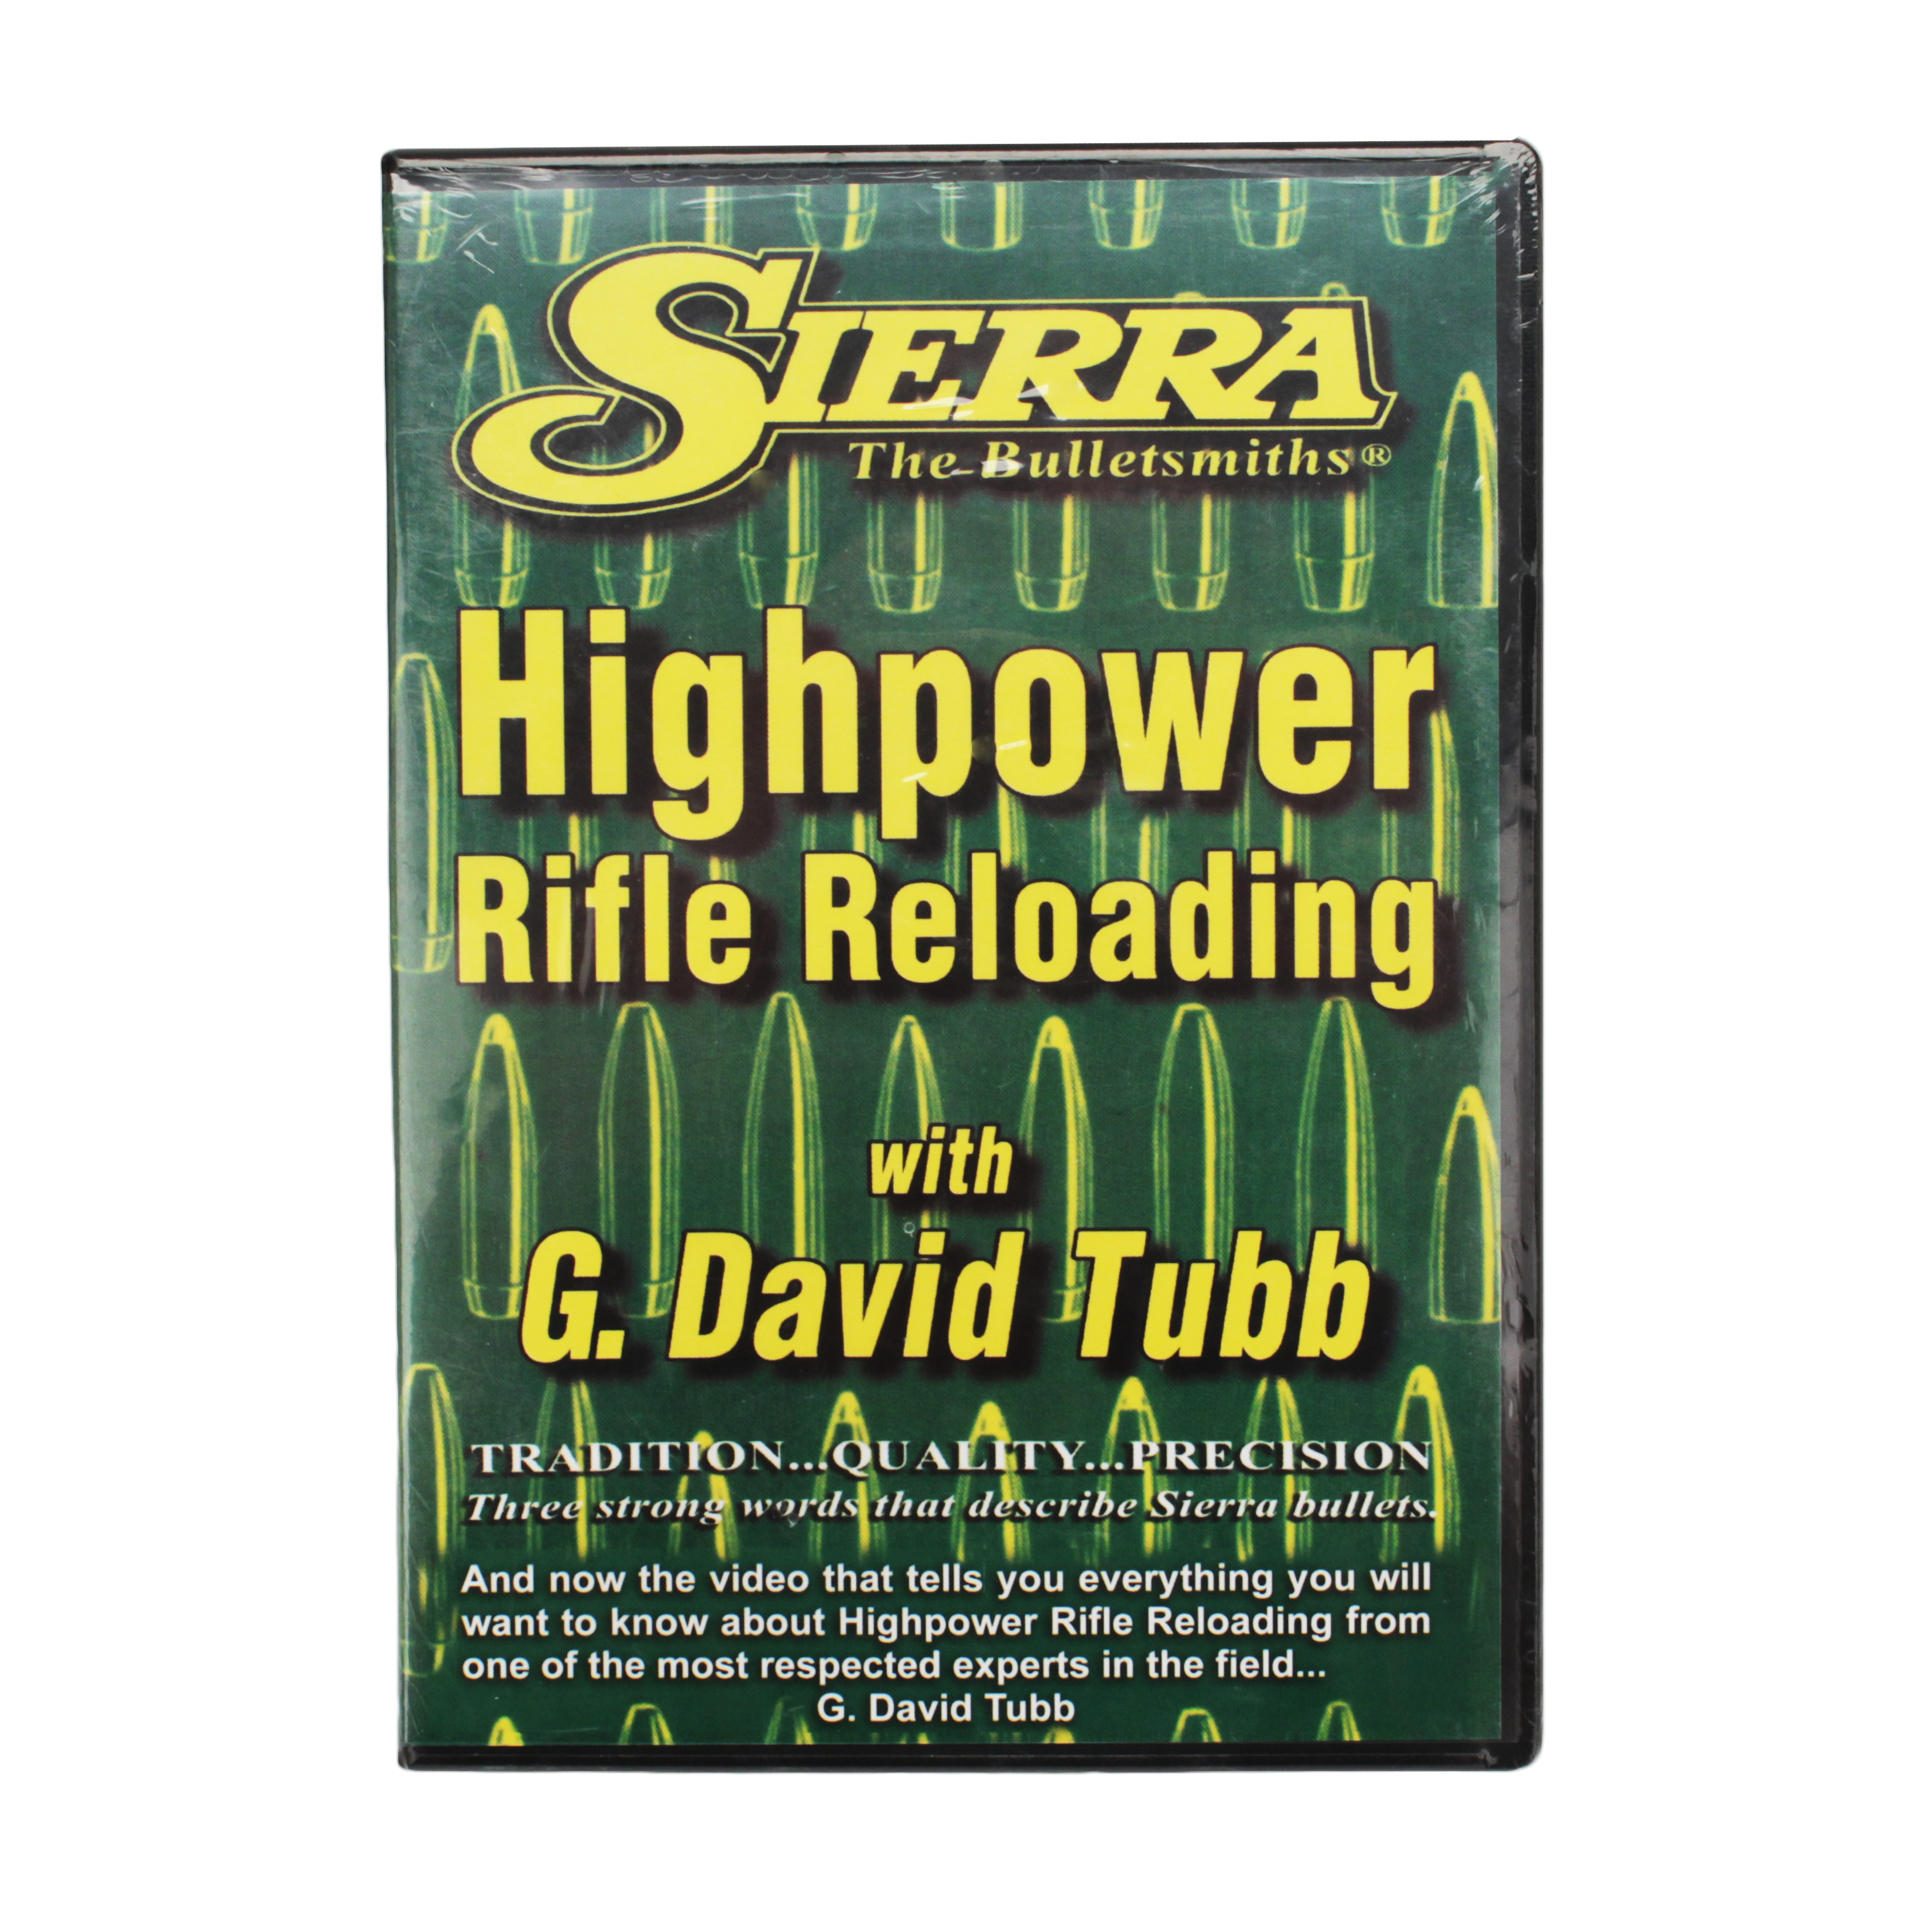 Advanced Rifle Reloading DVD